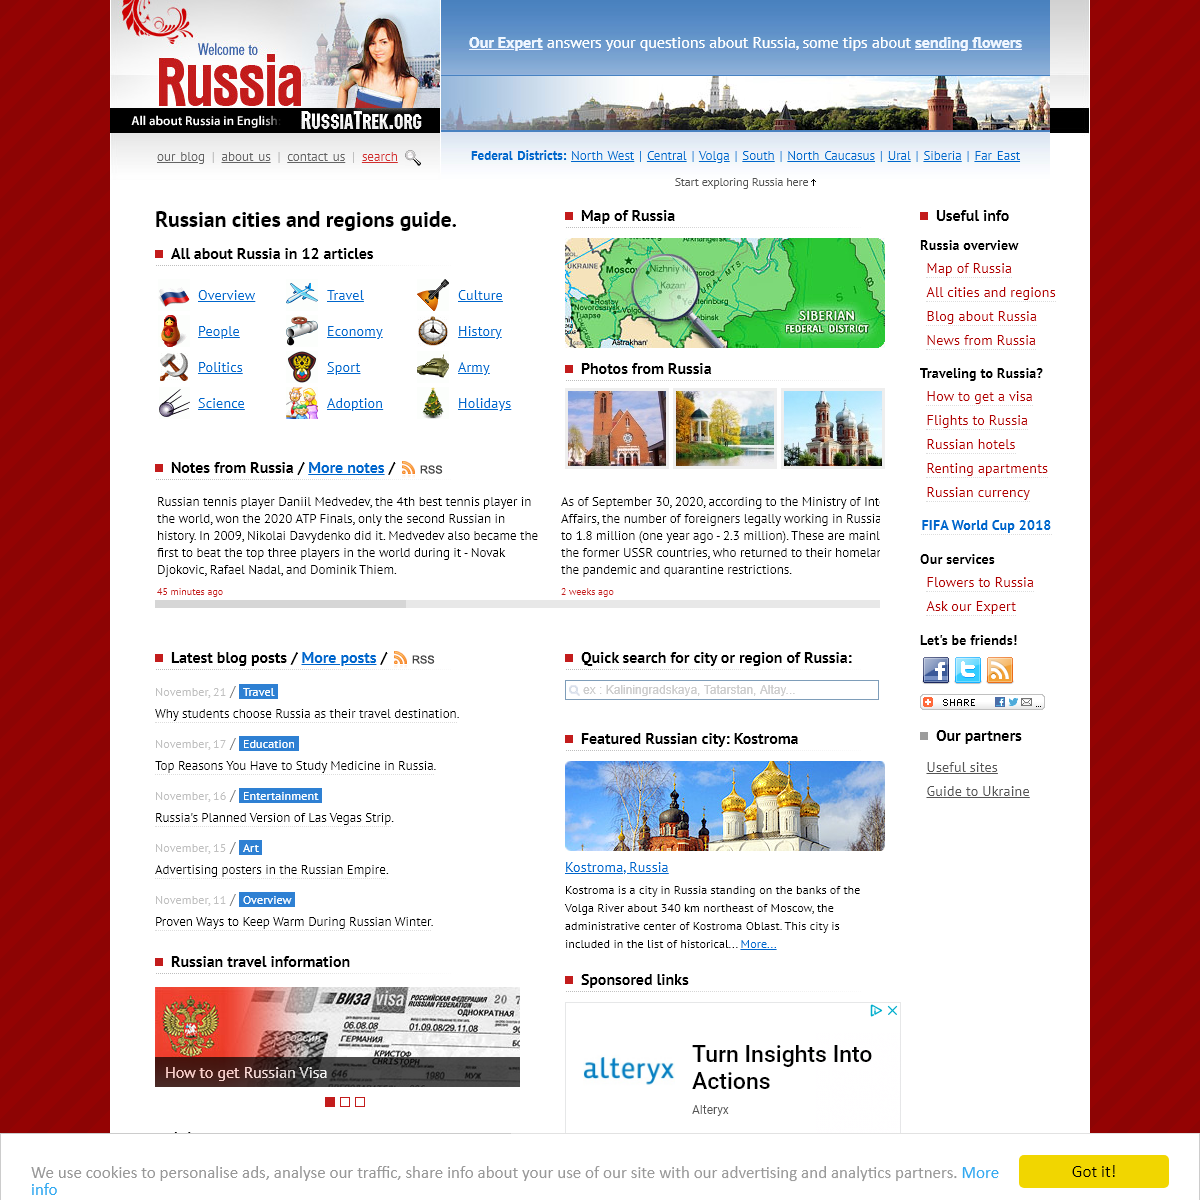 Russian cities and regions guide